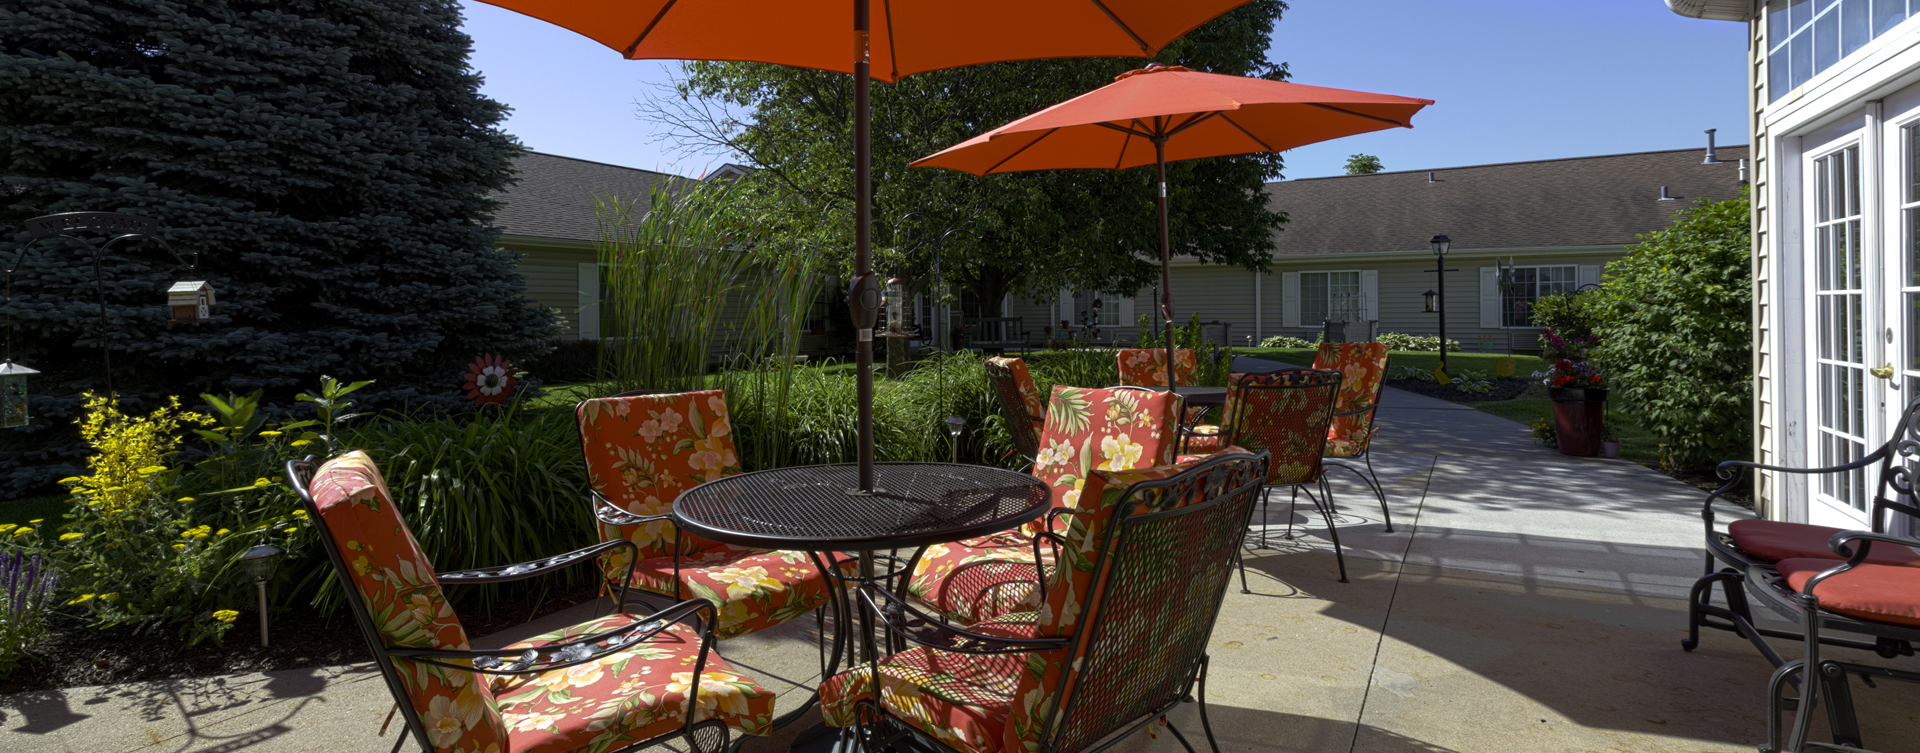 Enjoy the outdoors in a whole new light by stepping into our secure courtyard at Bickford of Omaha - Hickory